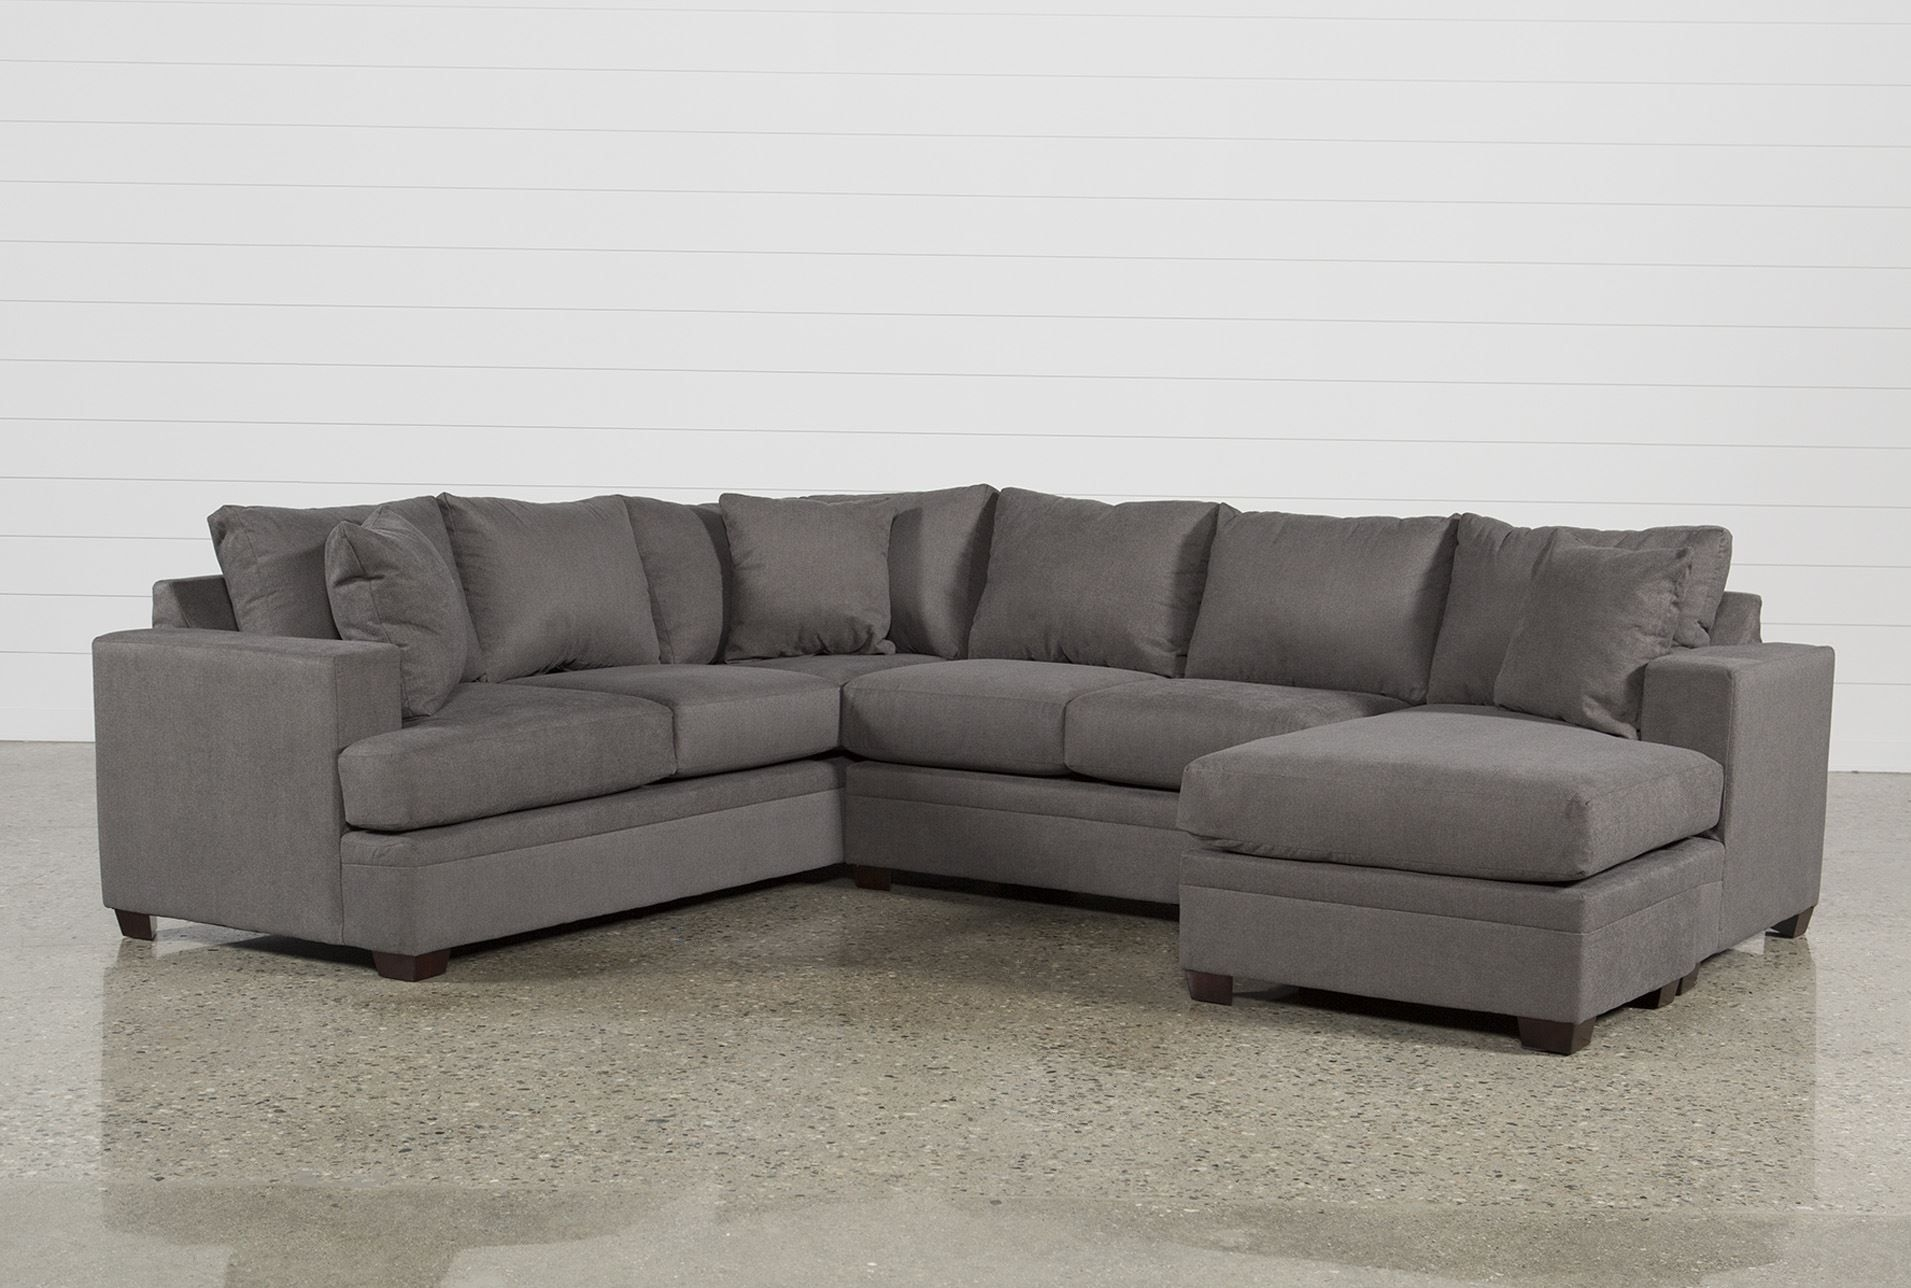 Kerri 2 Piece Sectional W/raf Chaise In 2018 | Products | Pinterest for Aspen 2 Piece Sleeper Sectionals With Raf Chaise (Image 13 of 30)